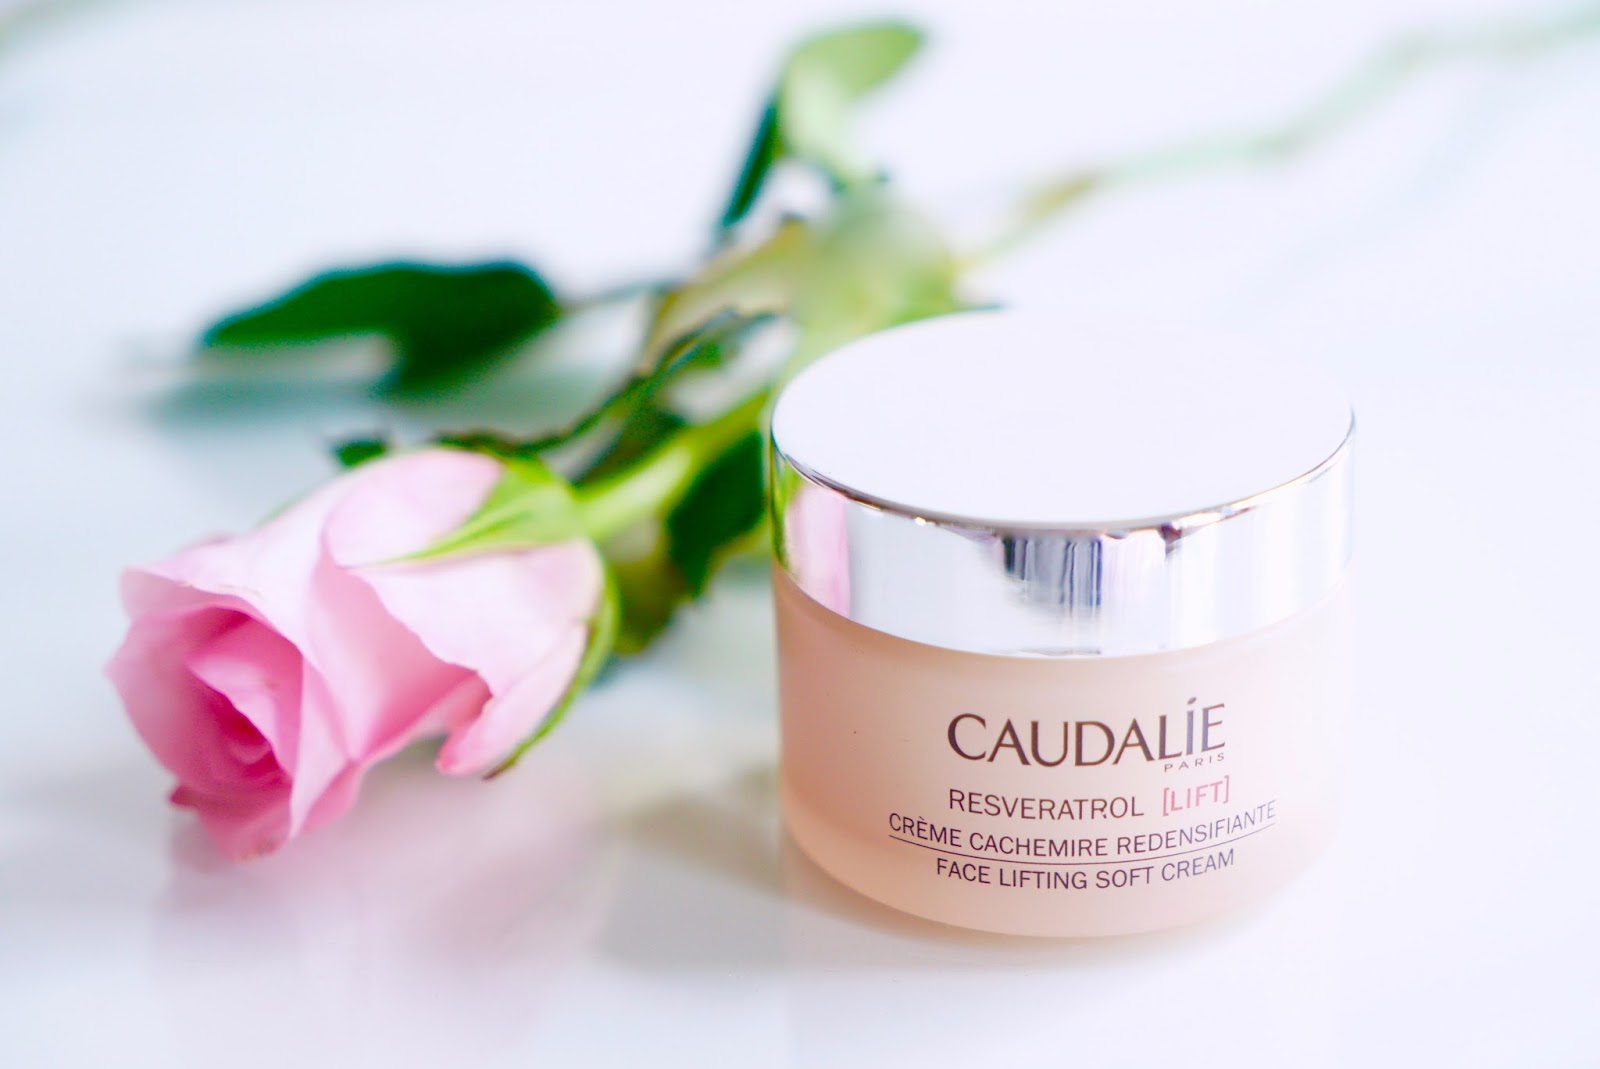 CAUDALIE REVERATROL FACE LIFTING SOFT CREAM